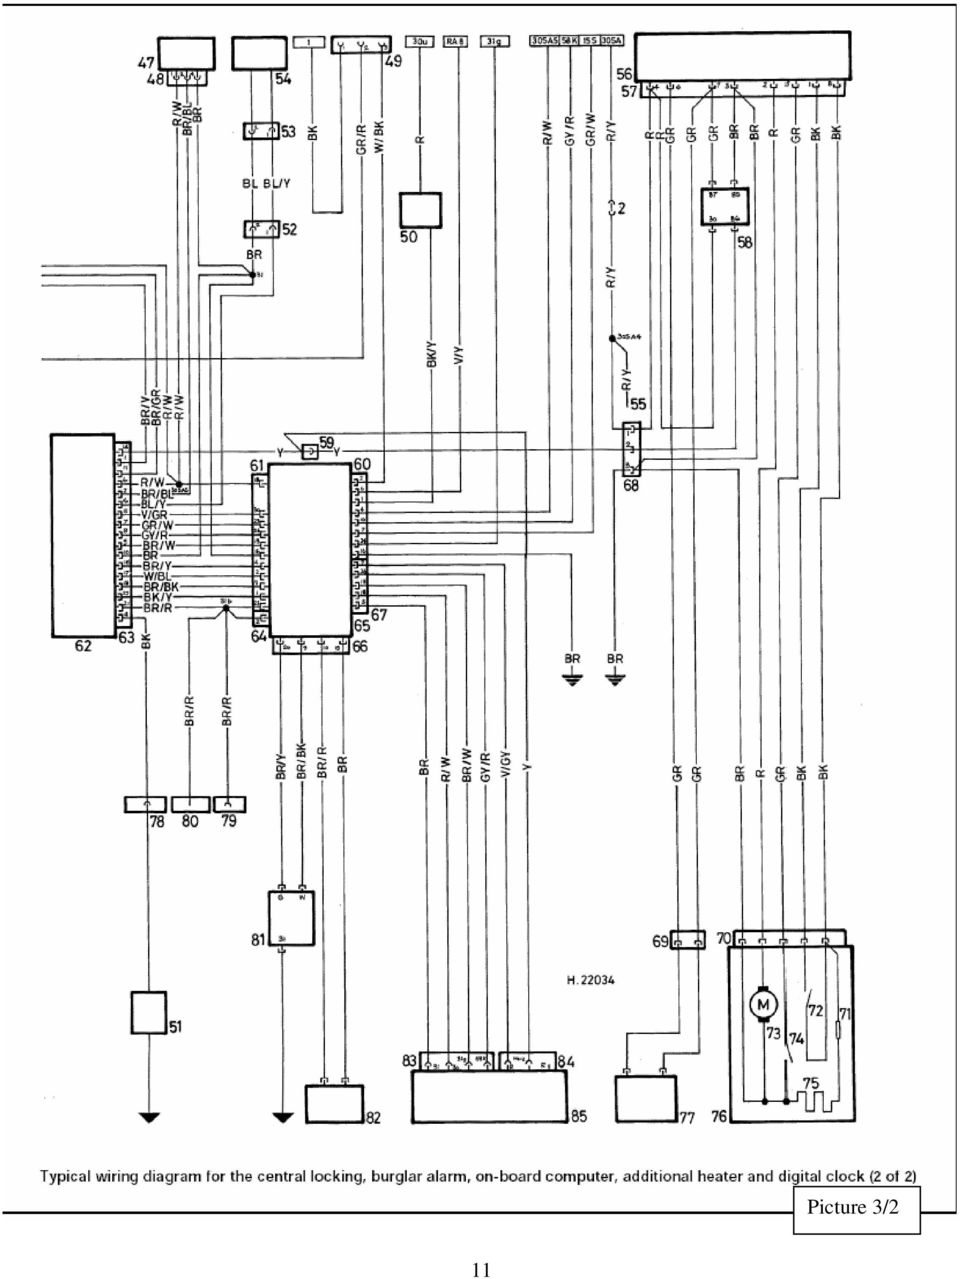 Colour Codes Diagrams Index Pdf 2003 3 8 Mitsubishi Plug Wire Diagram 12 Key To Wiring For The Central Locking Burglar Alarm On Board Computer Additional Heater End Digital Clock Picture 1 2 Rear